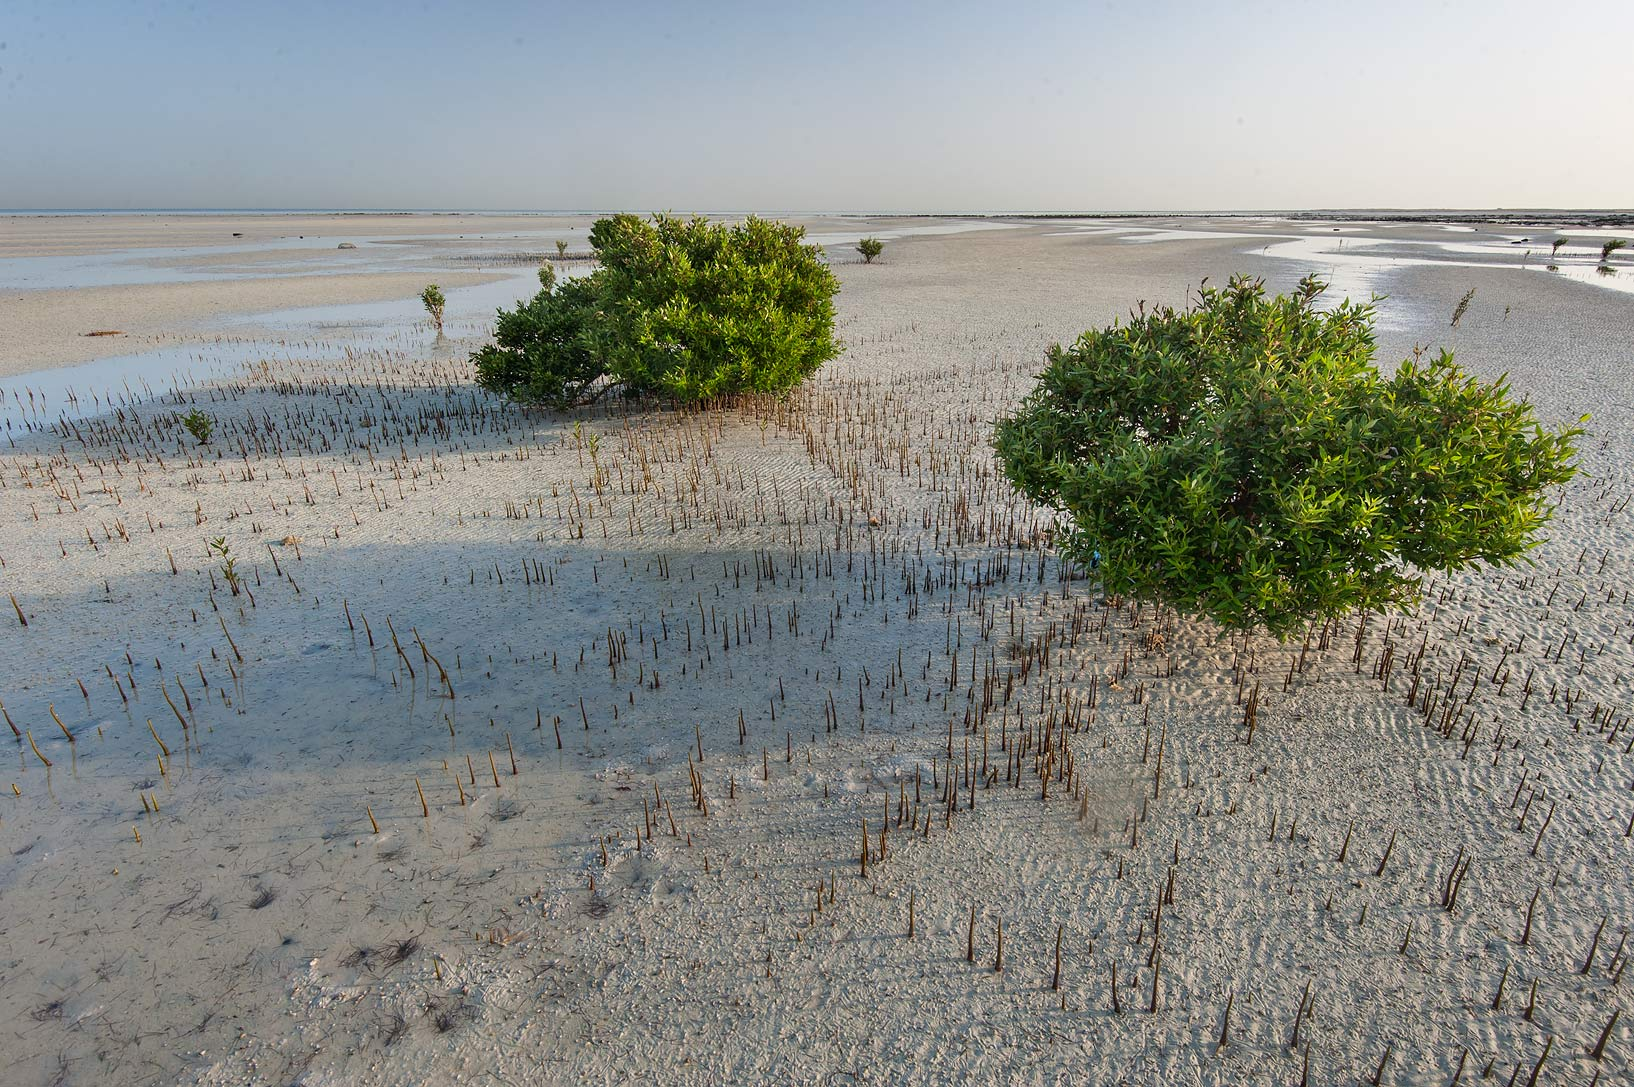 Grey mangroves (Avicennia marina) surrounded by...Jumayl) west of Ruwais. Northern Qatar